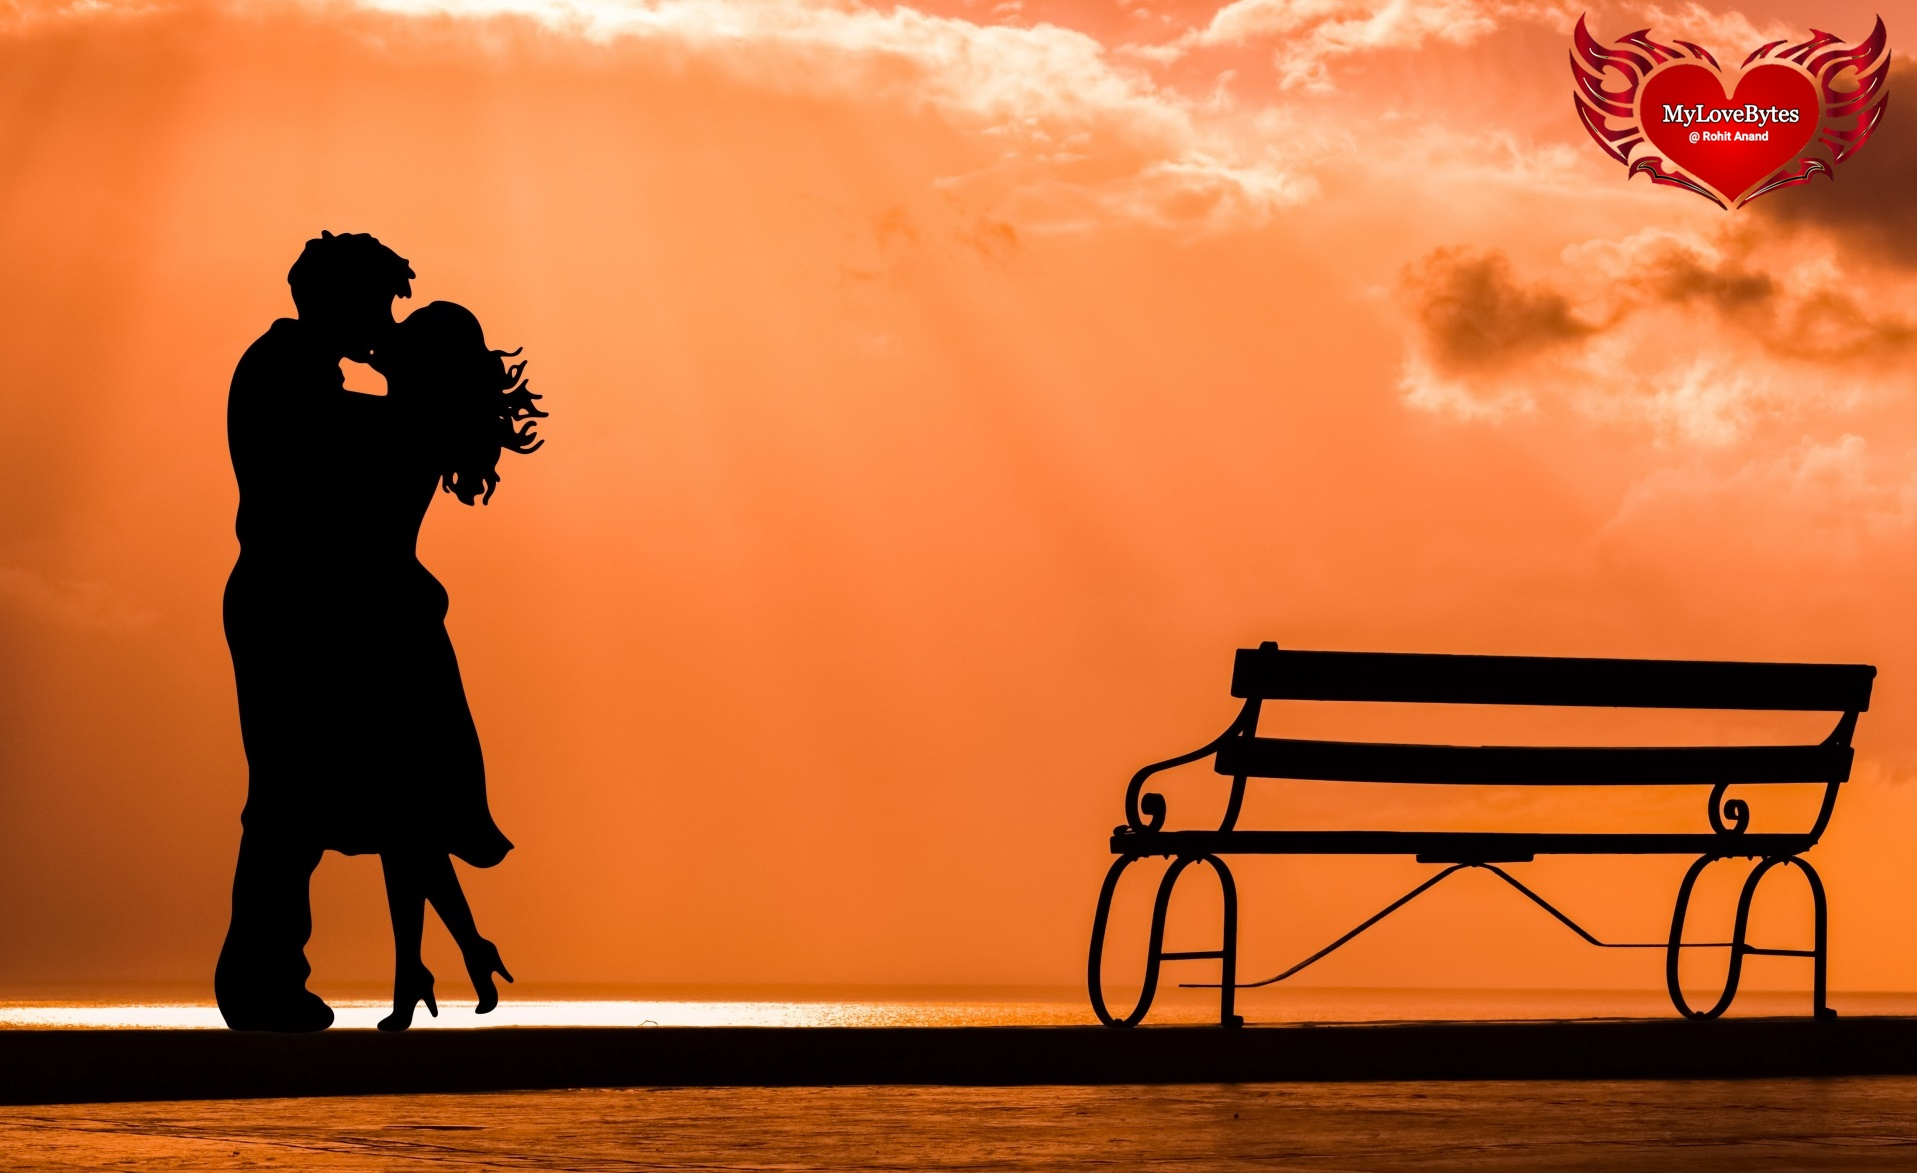 Latest Romantic & Sweet Love Wallpaper Photos in HD Full Size for Free download